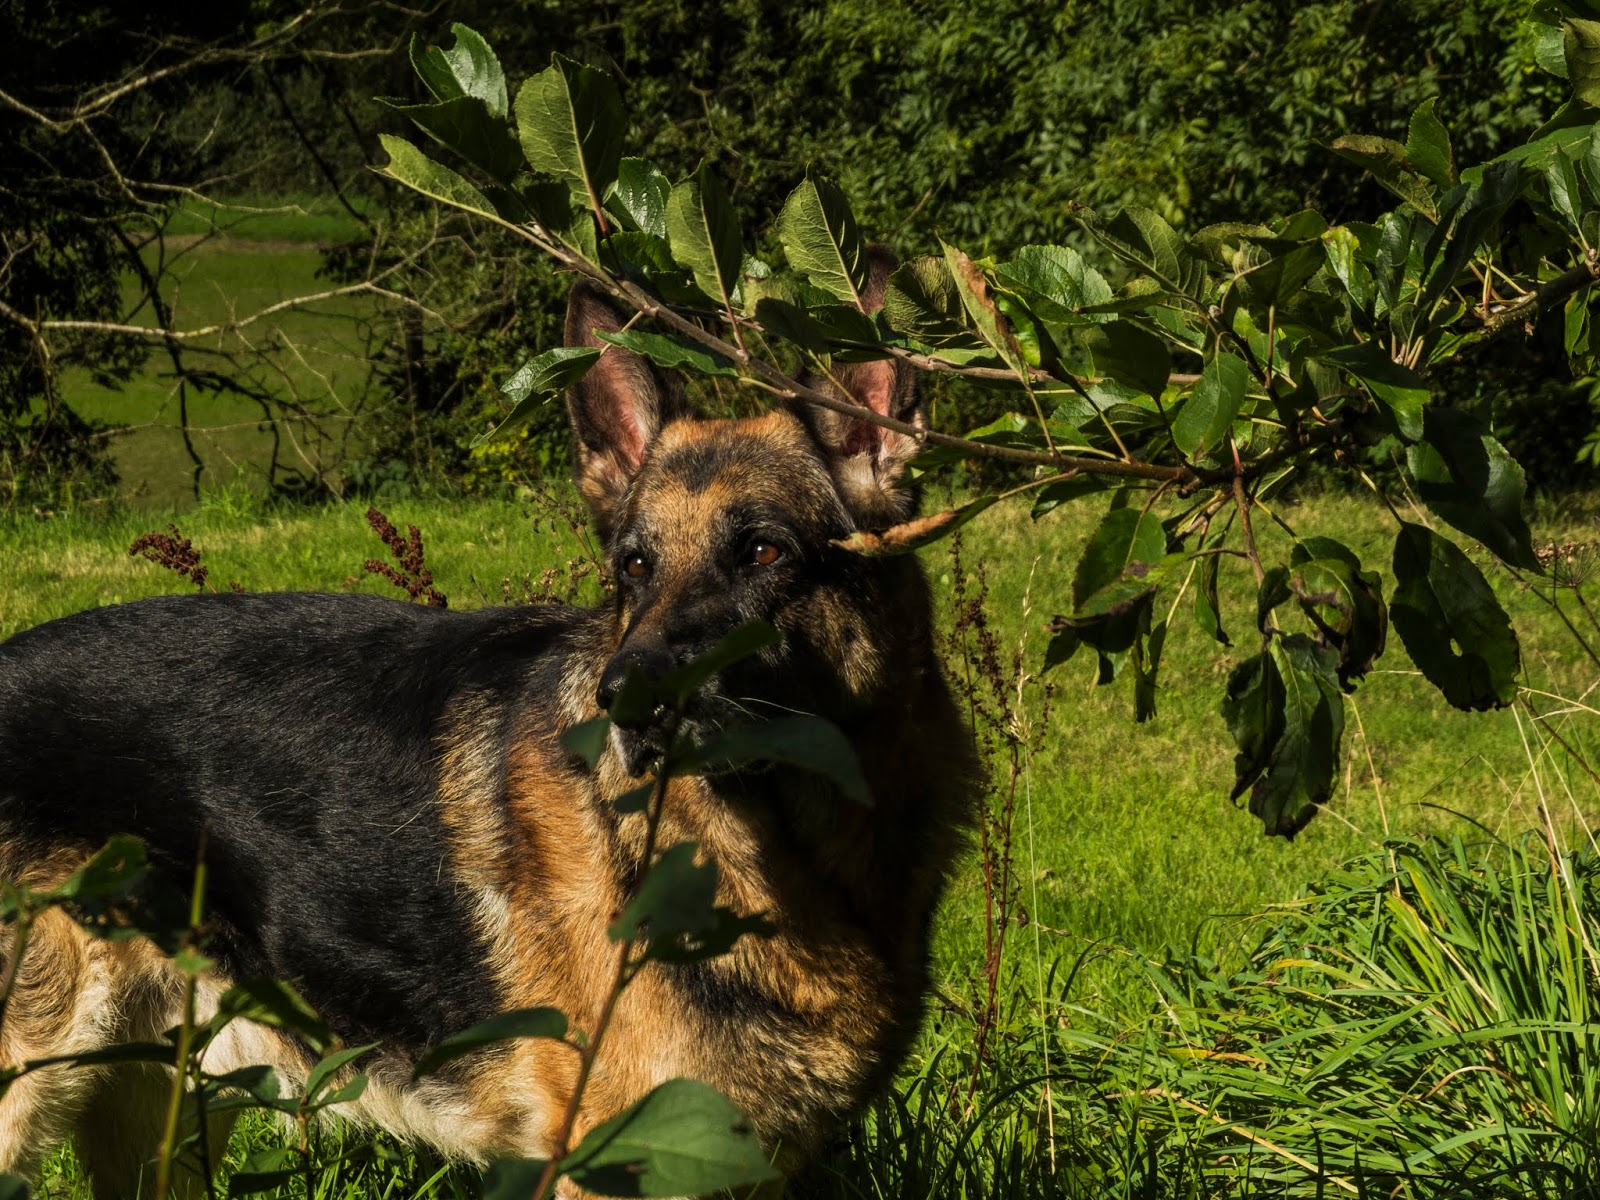 A German Shepherd Steve standing in the grass next to an apple tree in sunlight.